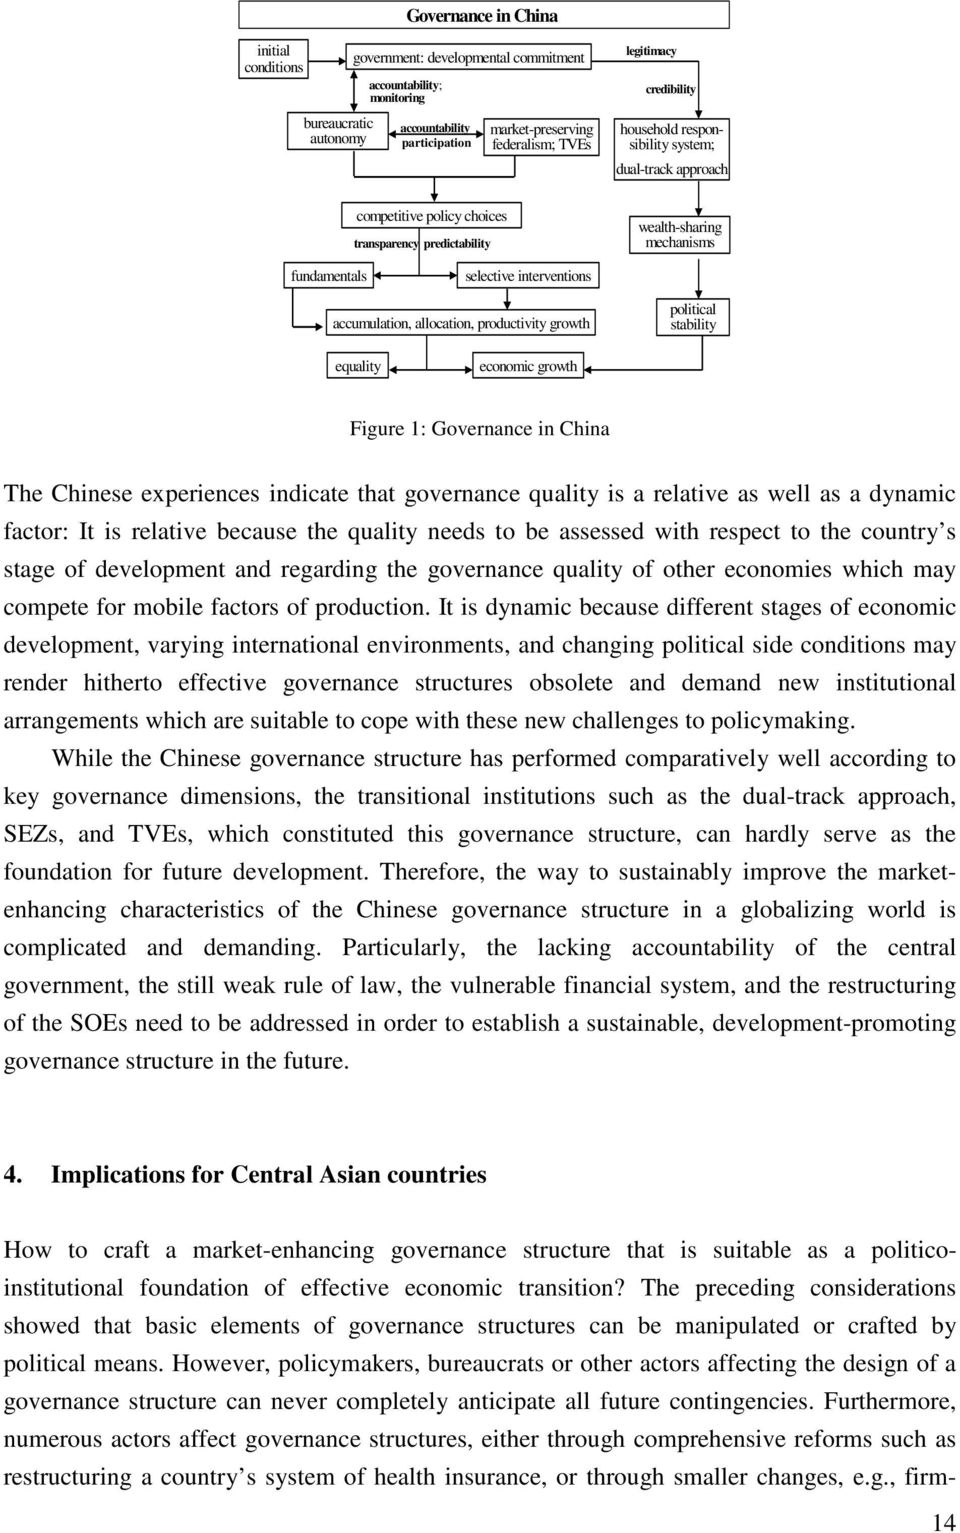 allocation, productivity growth political stability equality economic growth Figure 1: Governance in China The Chinese experiences indicate that governance quality is a relative as well as a dynamic